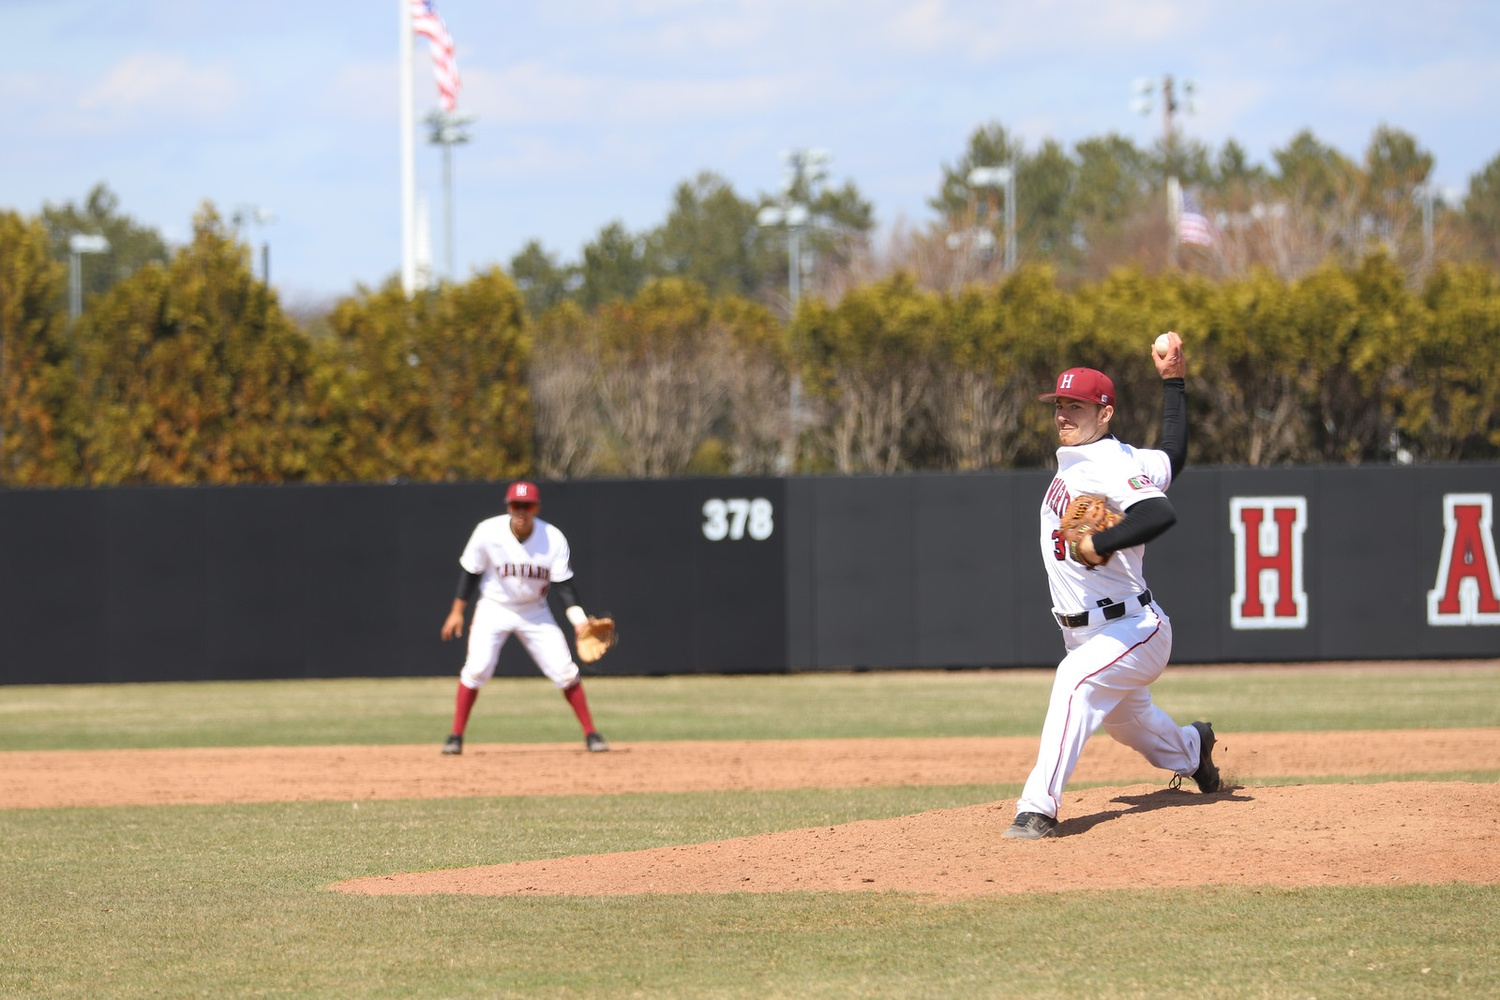 Hunting the Fastball